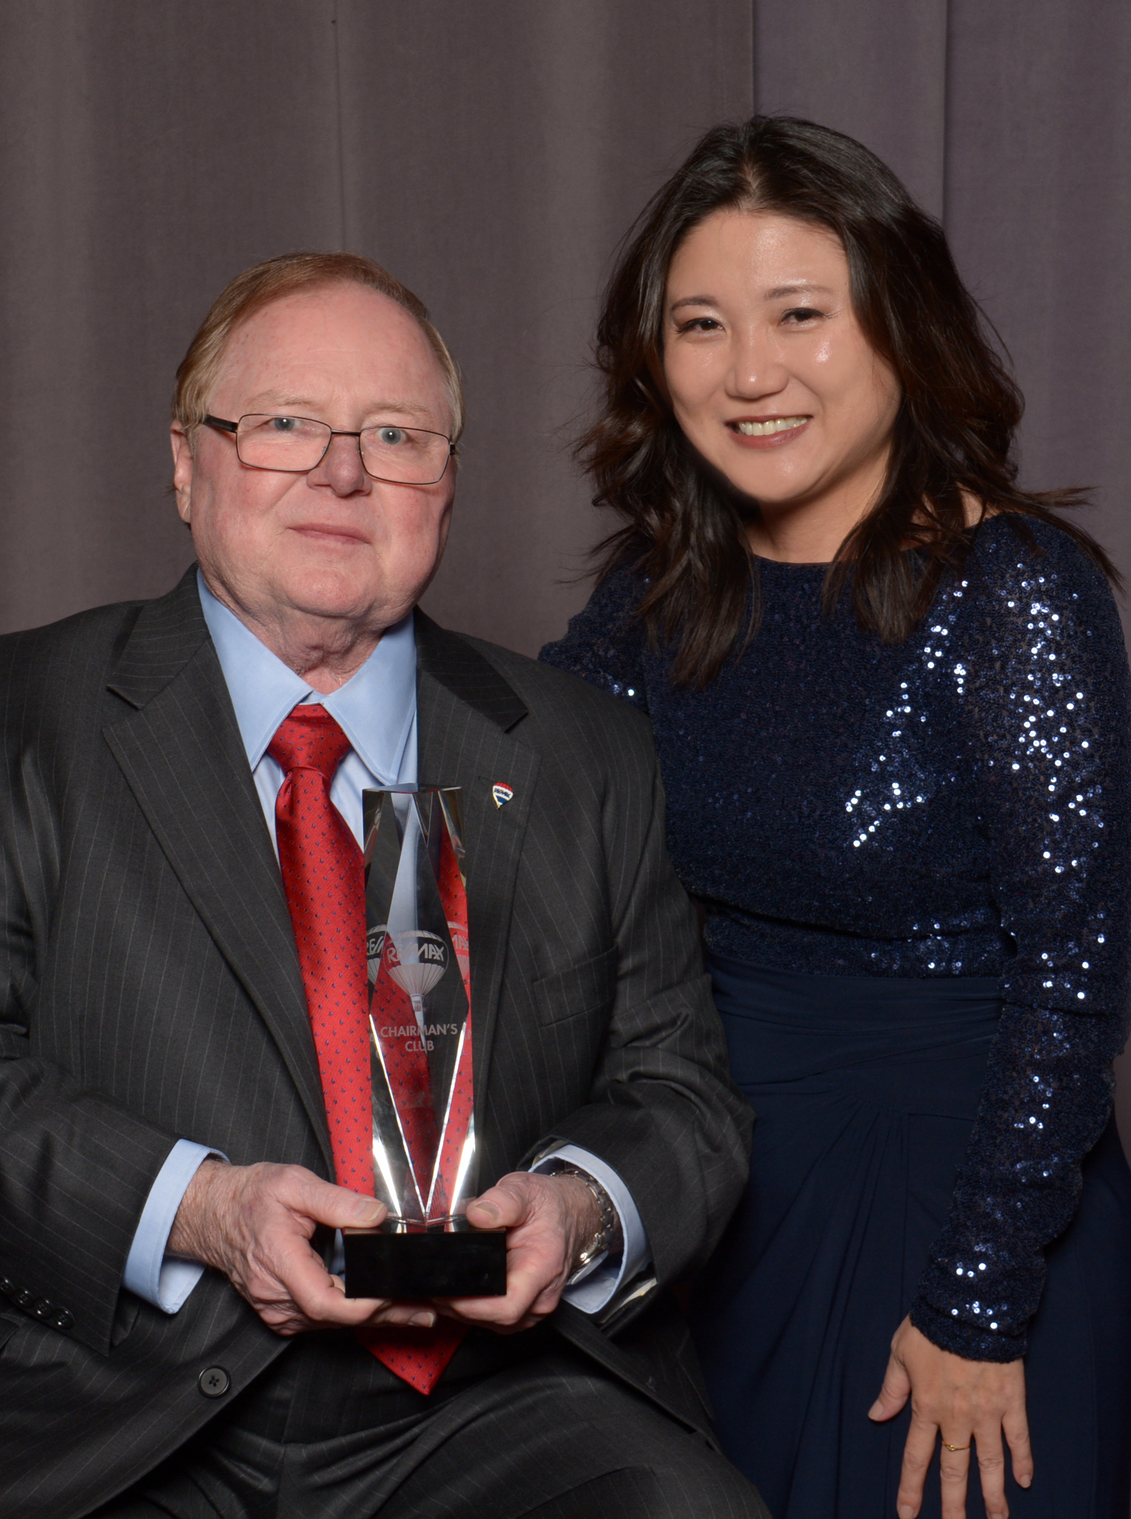 Chairman Award Recipient Re/Max  Presented by: Dave Liniger Chairman/Co-Founder, Re/Max LLC